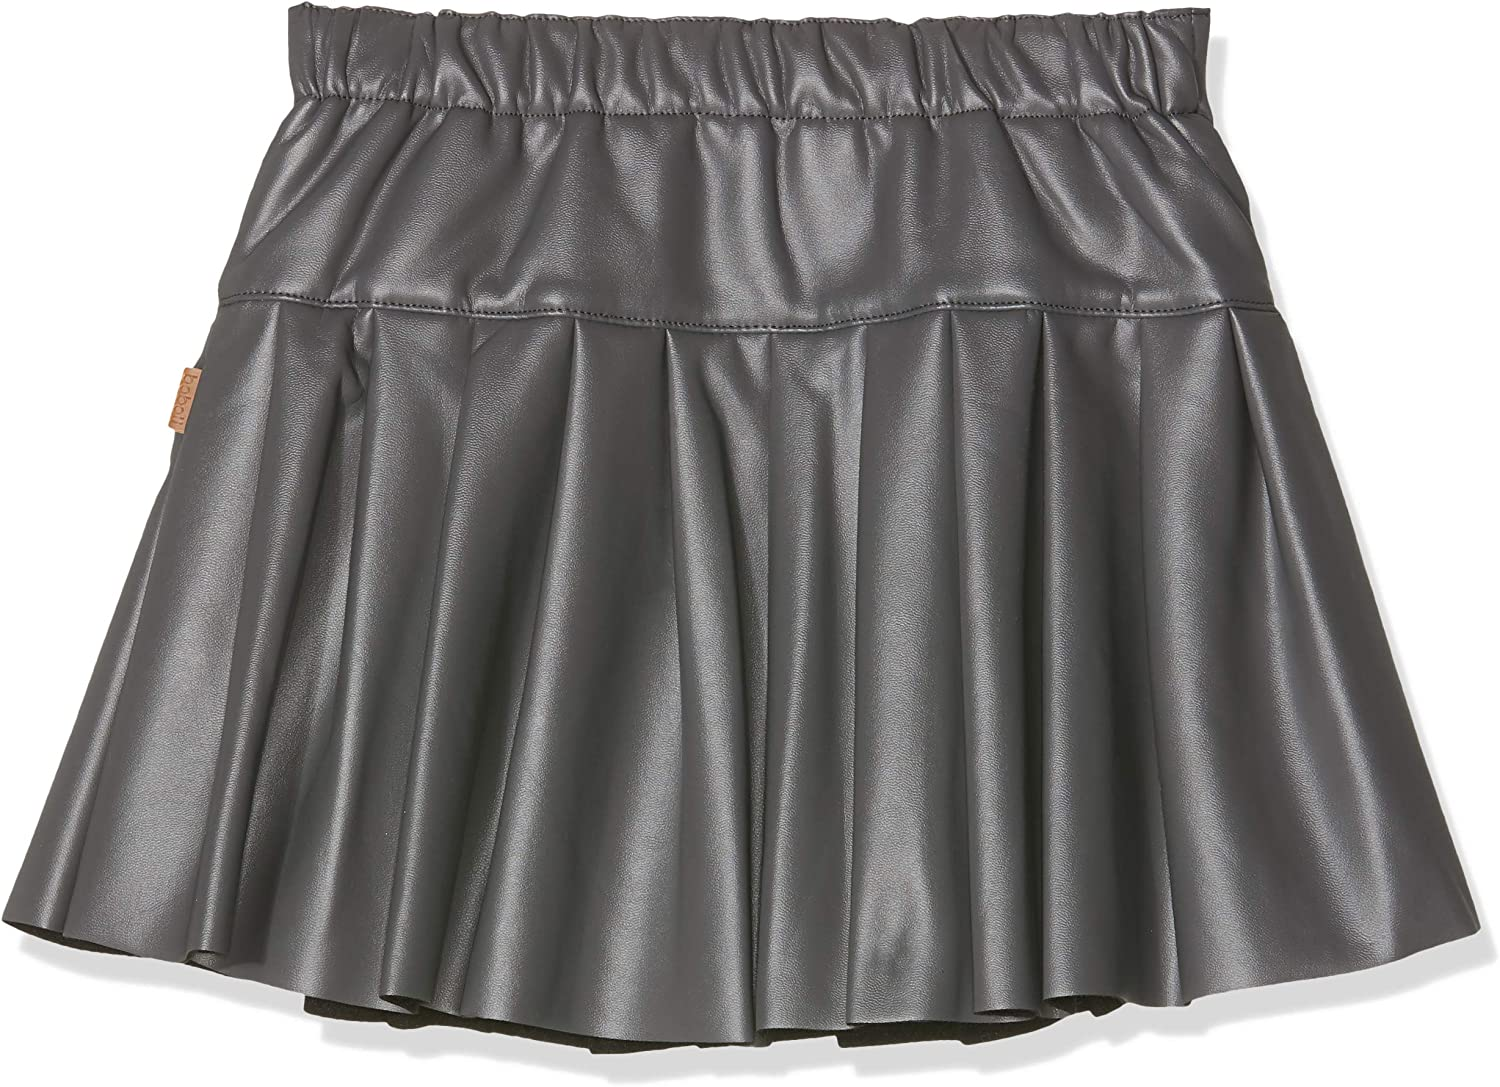 boboli Synthetic Leather Skirt For Girl, Falda para Niñas, Gris ...